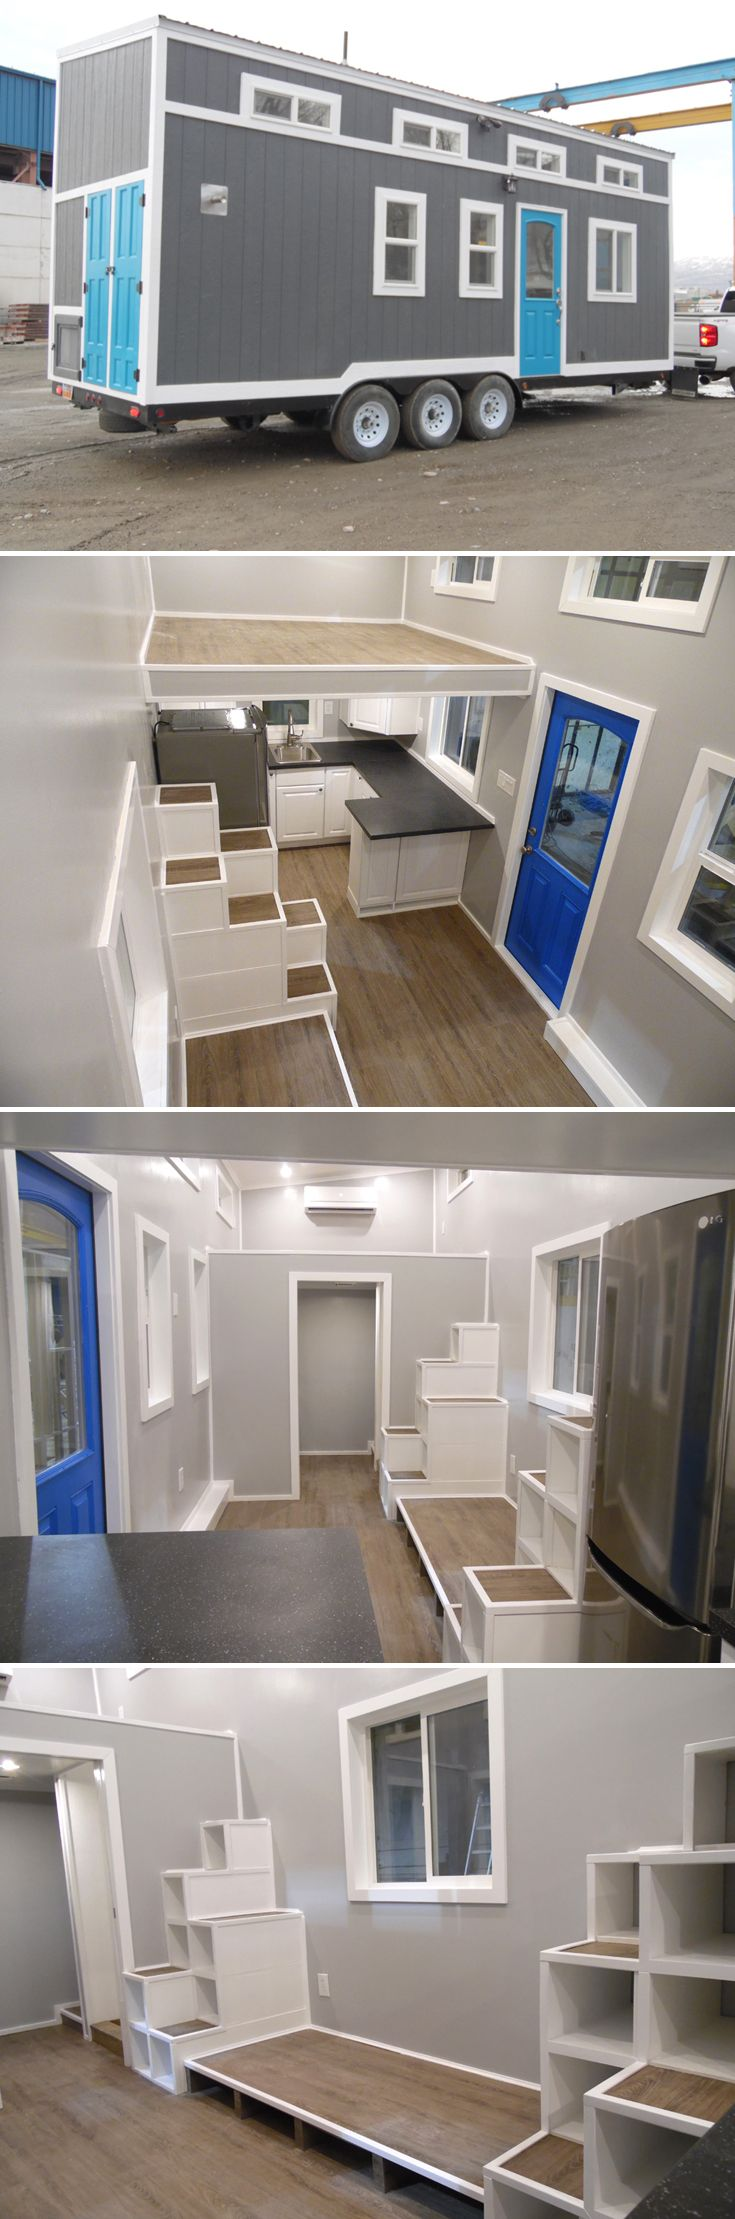 This 26 Foot Tiny House Has Two Large Bedroom Lofts With Storage Stairs Leading To